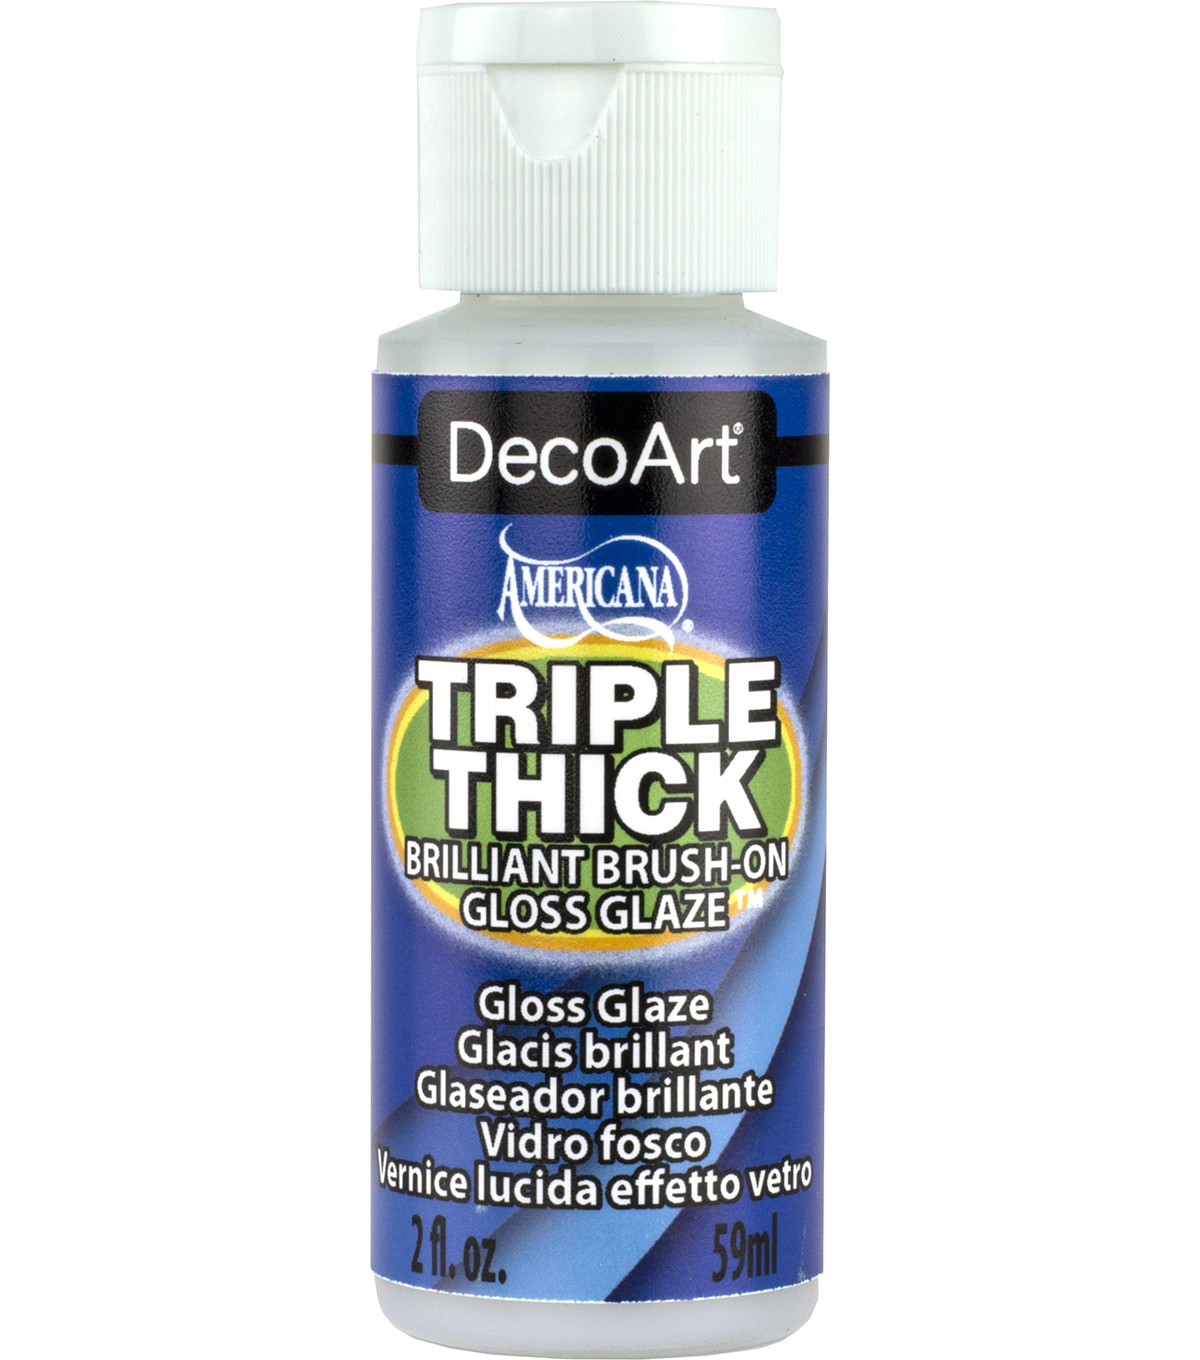 DecoArt Triple Thick Brilliant Brush-On 2 fl. oz. Gloss Glaze